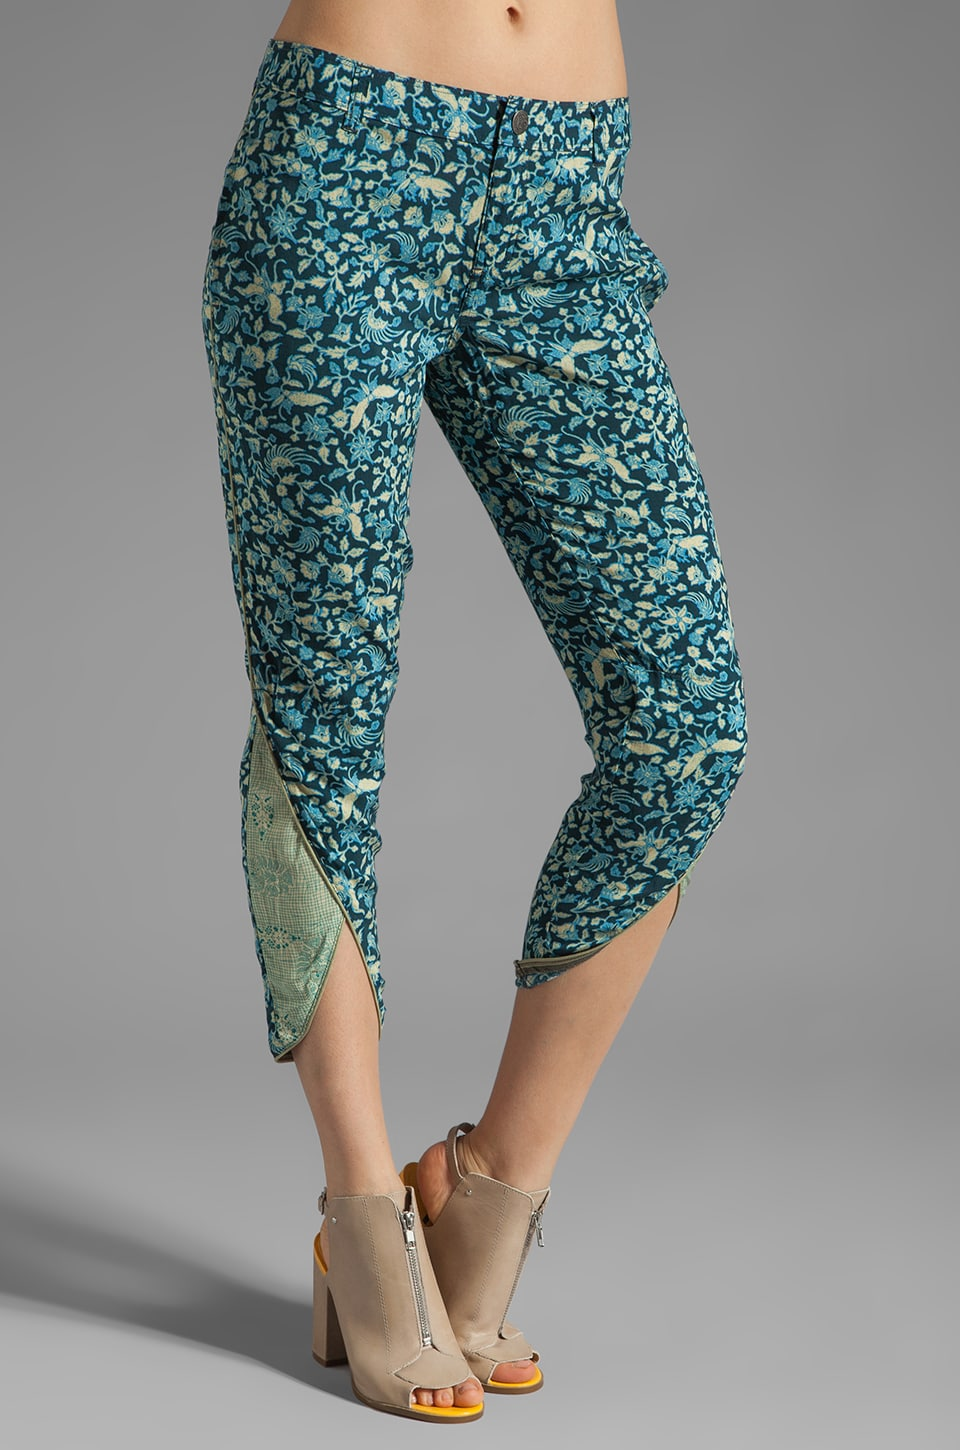 Free People Printed Dolphin Hem Pant in Navy Combo